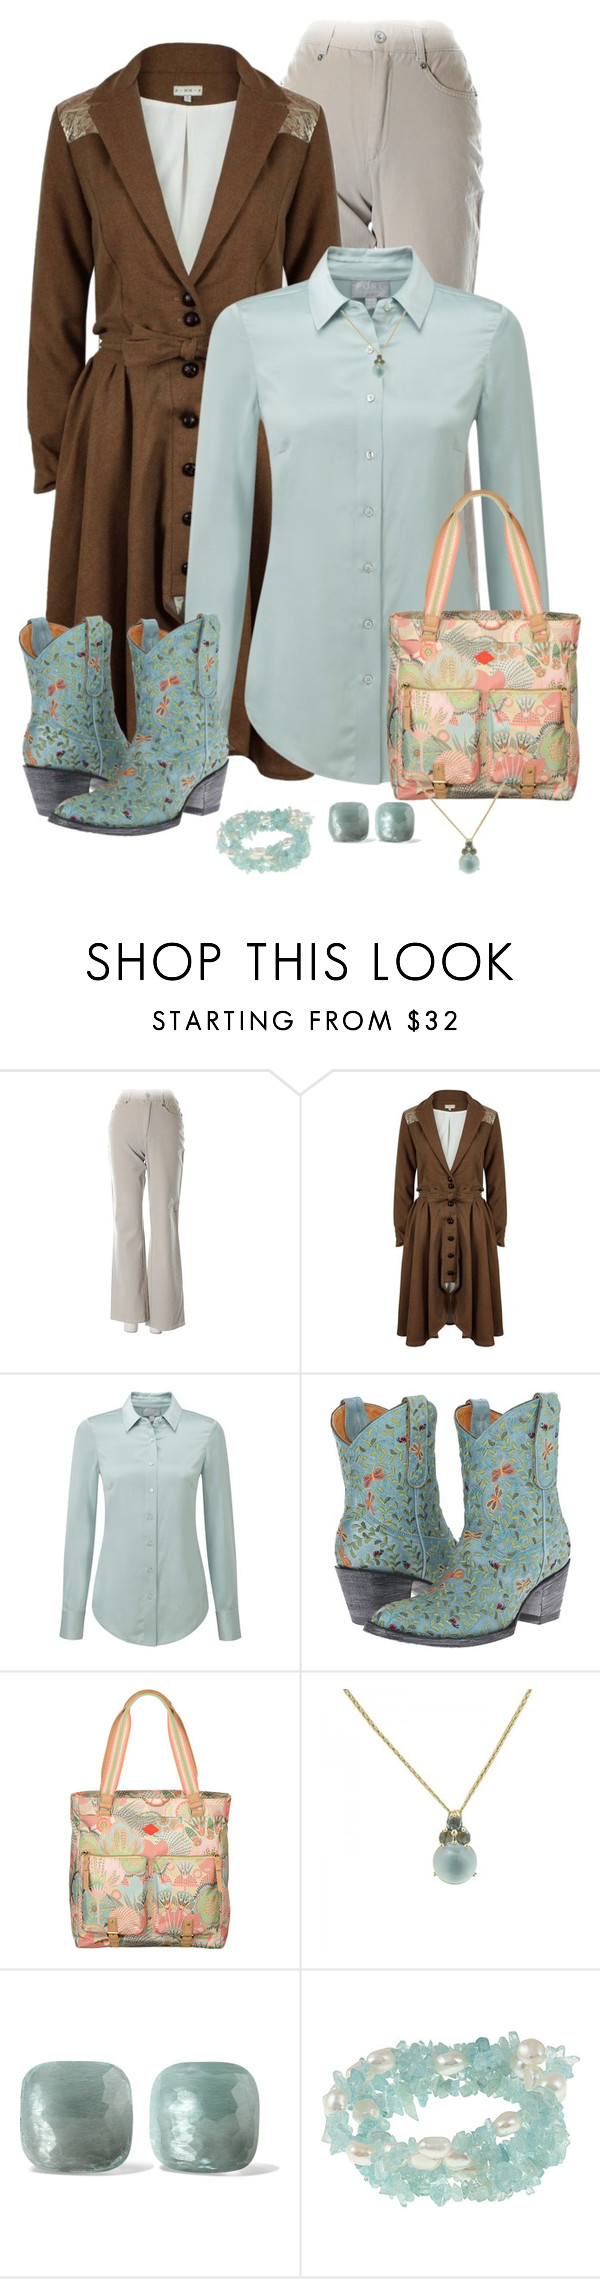 """Heels"" by susan0219 ❤ liked on Polyvore featuring A - M M - E, Pure Collection, Old Gringo, Pomellato and DaVonna"